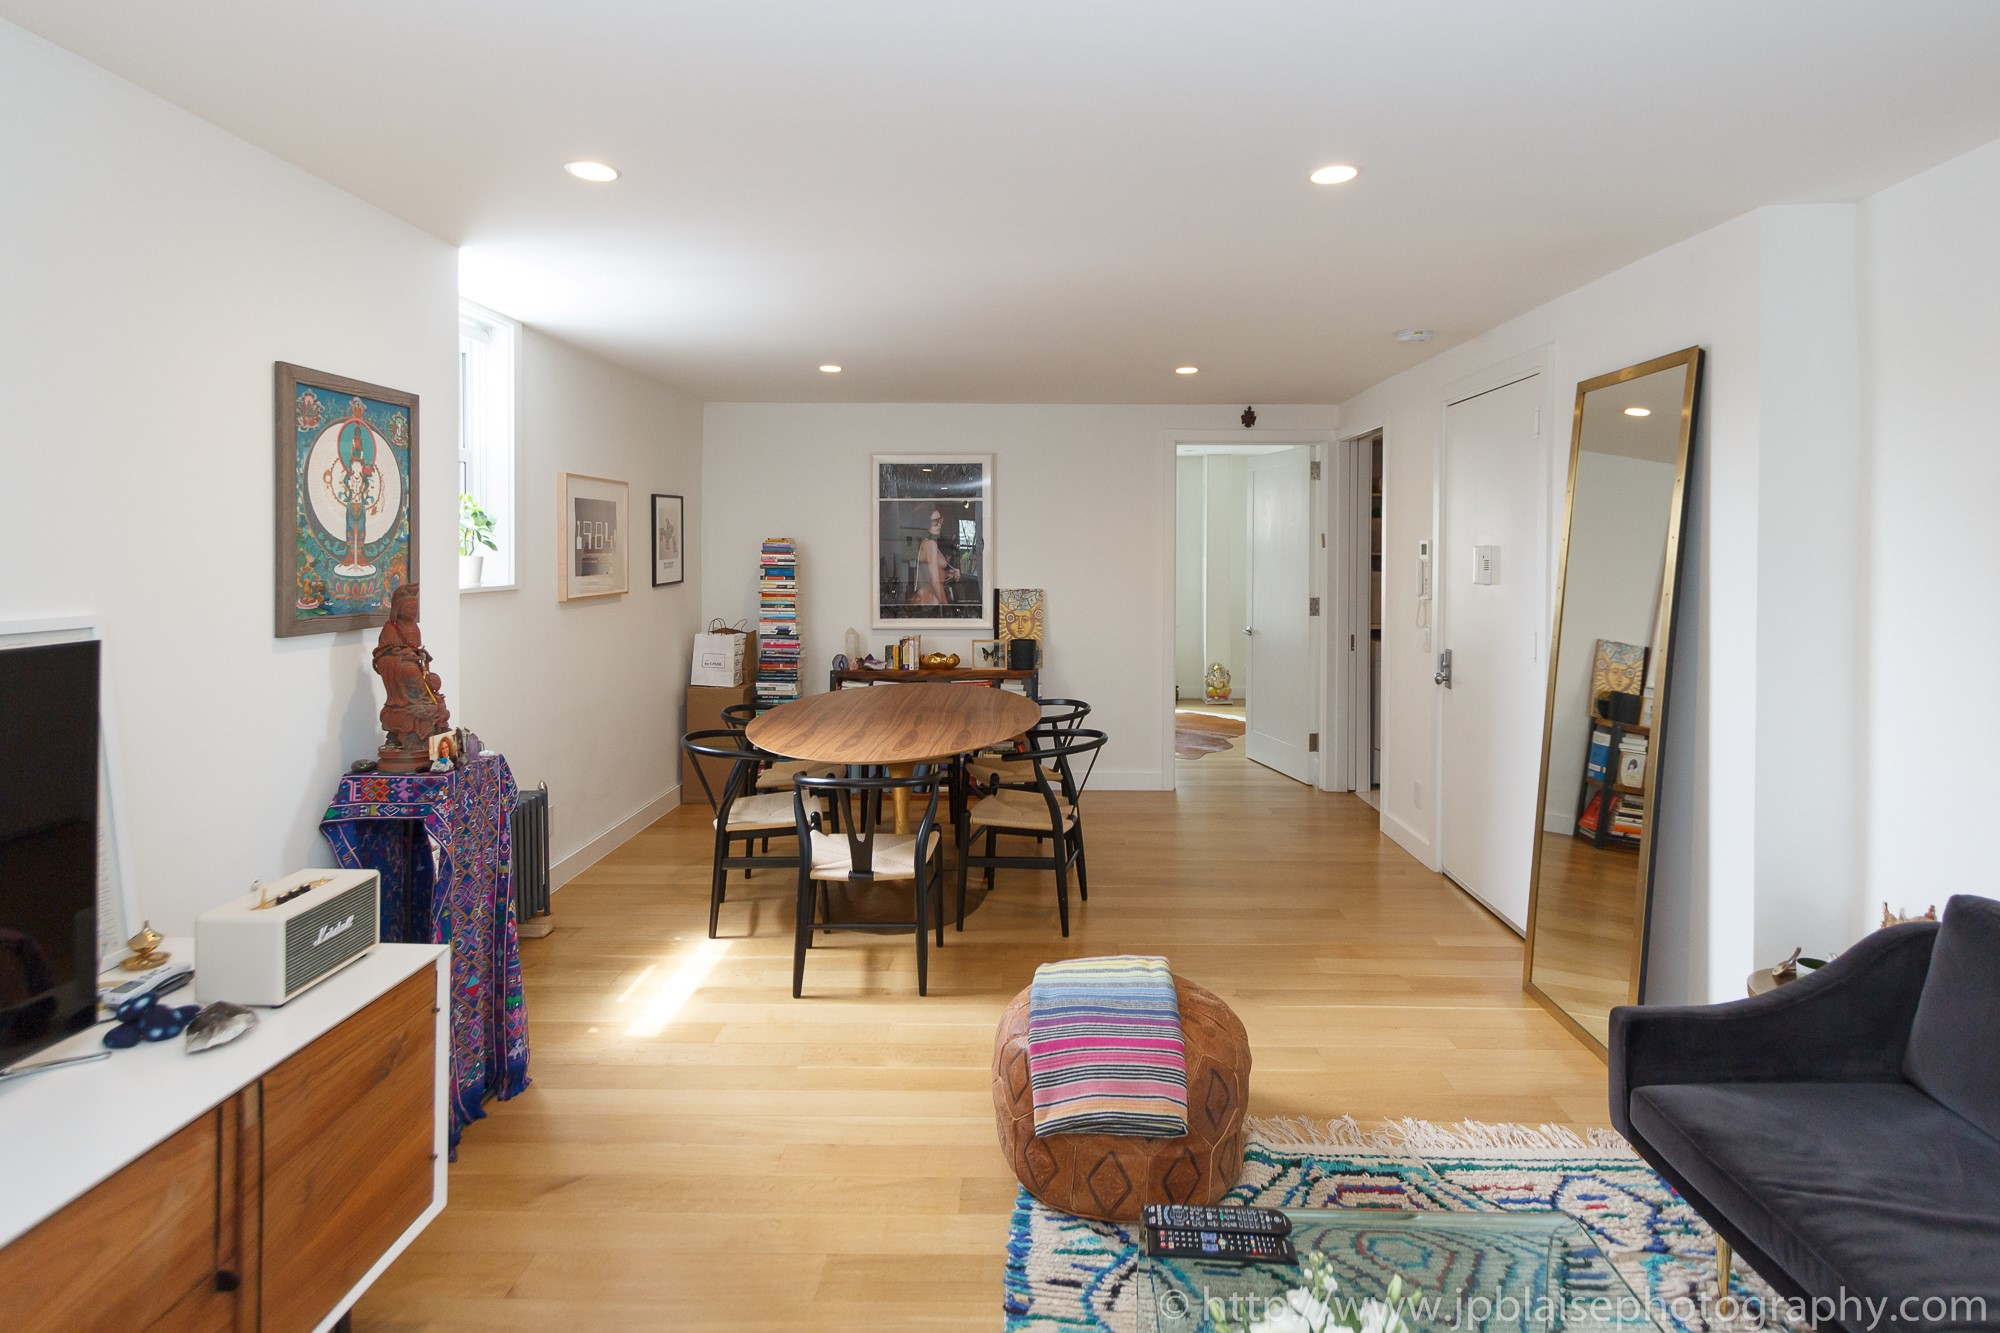 New York Real Estate Photography Latest Work Recently